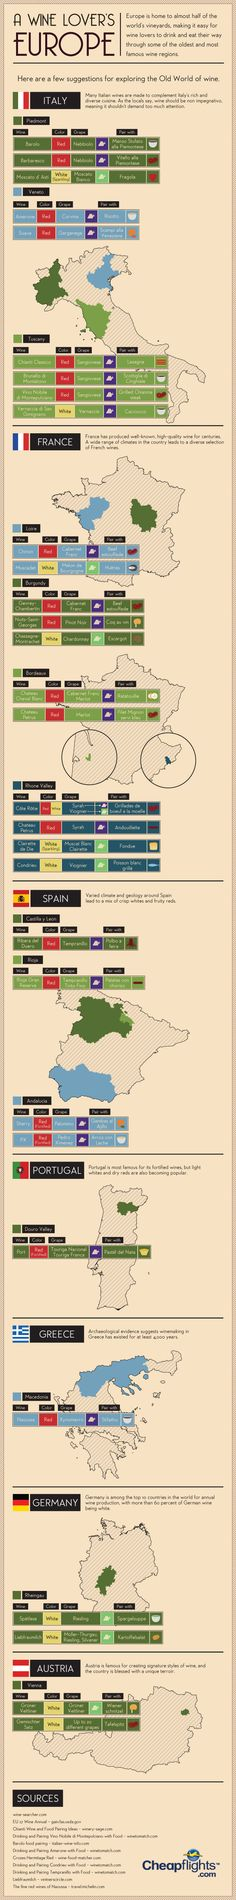 European Wine Guide : Are you that kind of person that can only accept the quality of European wine? Then you must read this infographic.  > http://infographicsmania.com/european-wine-guide/?utm_source=Pinterest&utm_medium=ZAKKAS&utm_campaign=SNAP